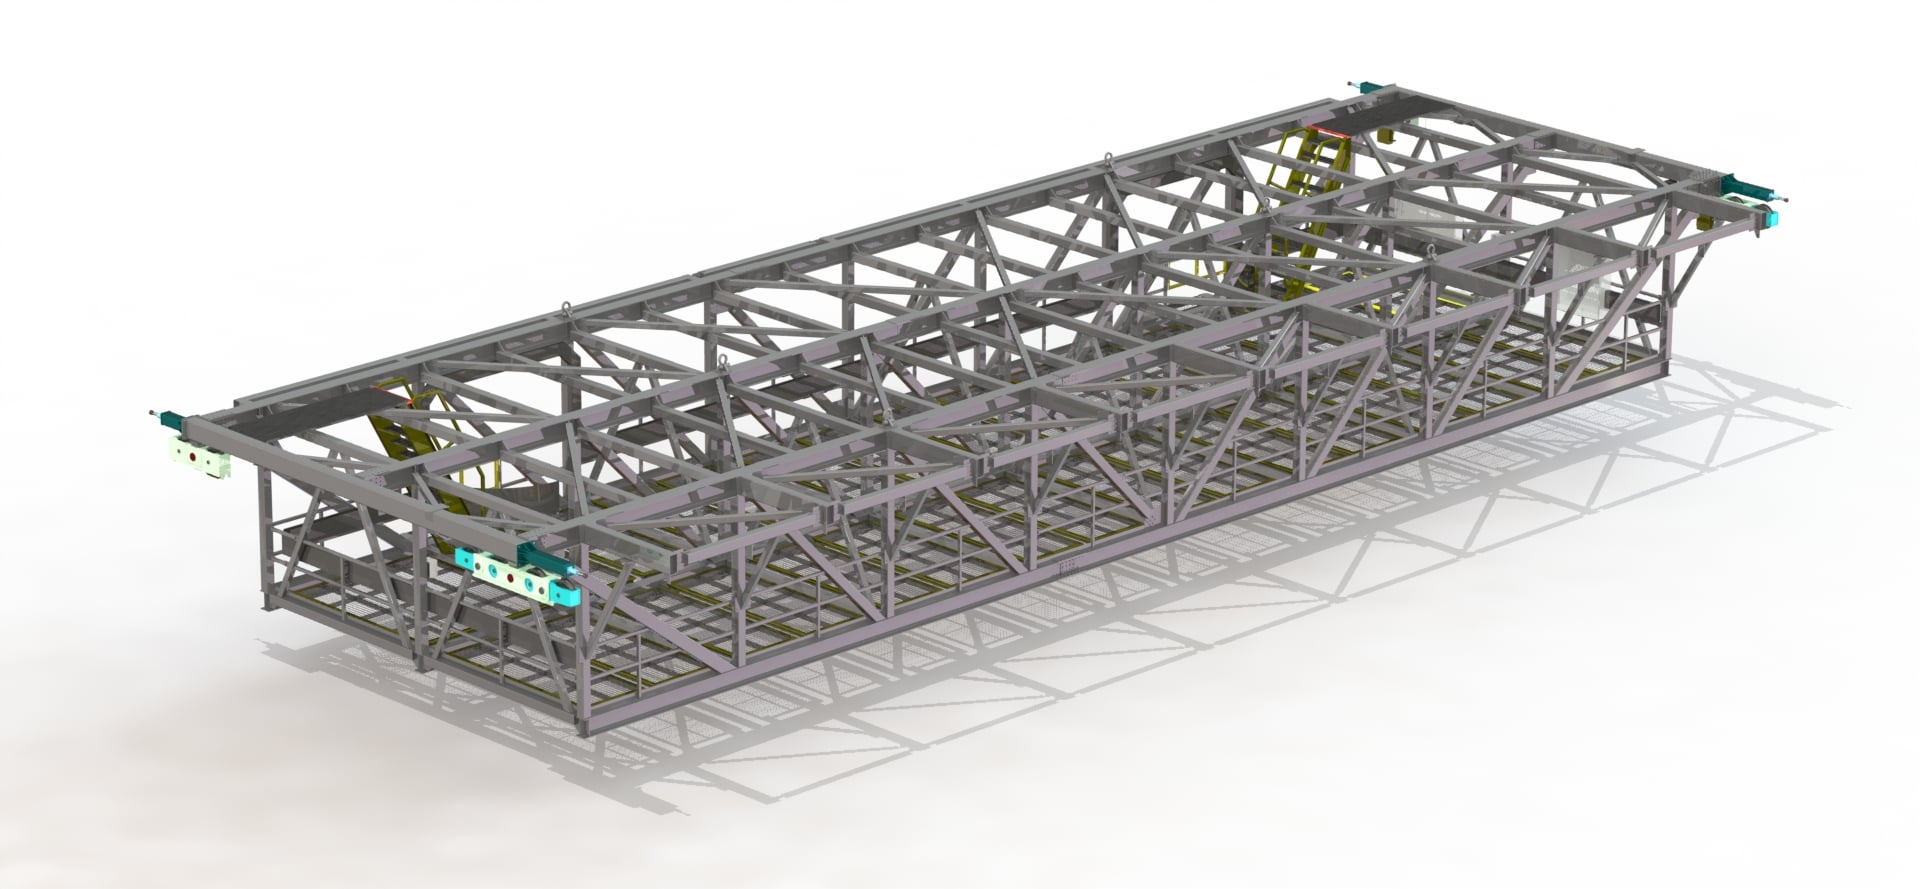 Gantry Grid Rendering